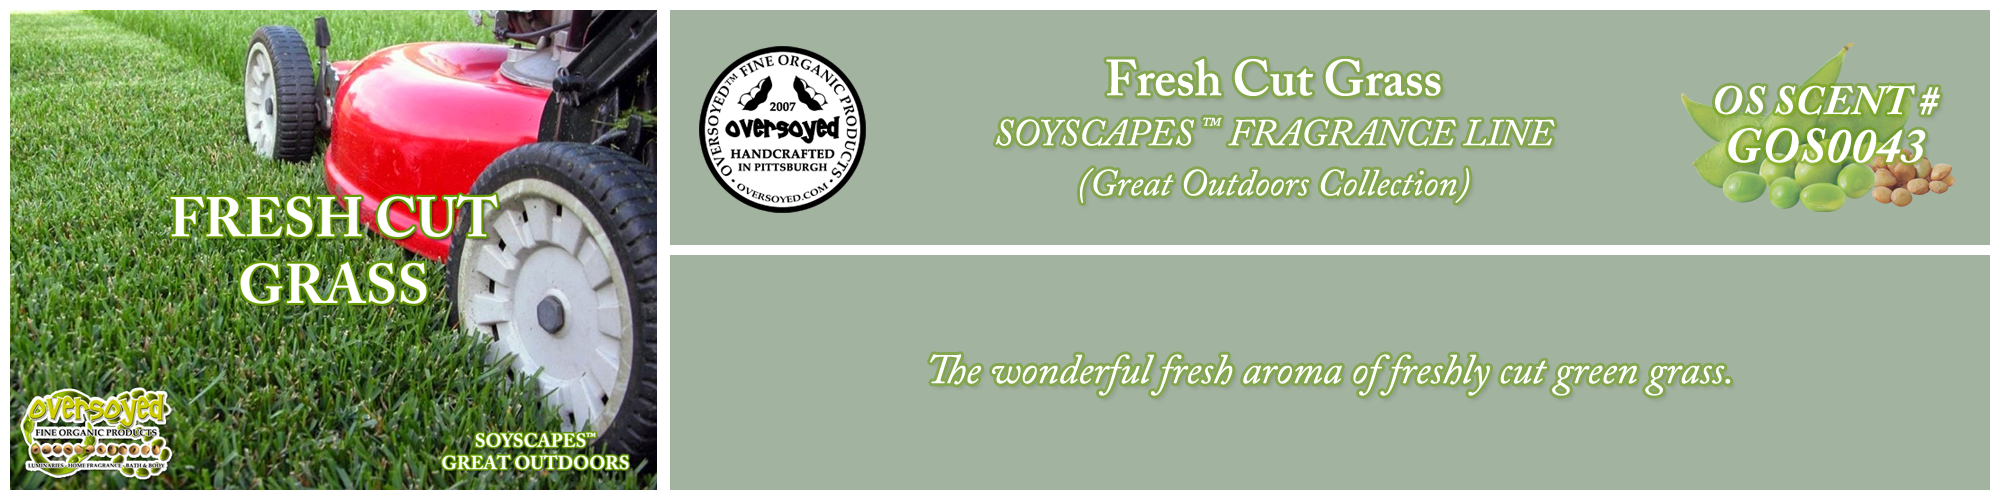 Fresh Cut Grass Handcrafted Products Collection